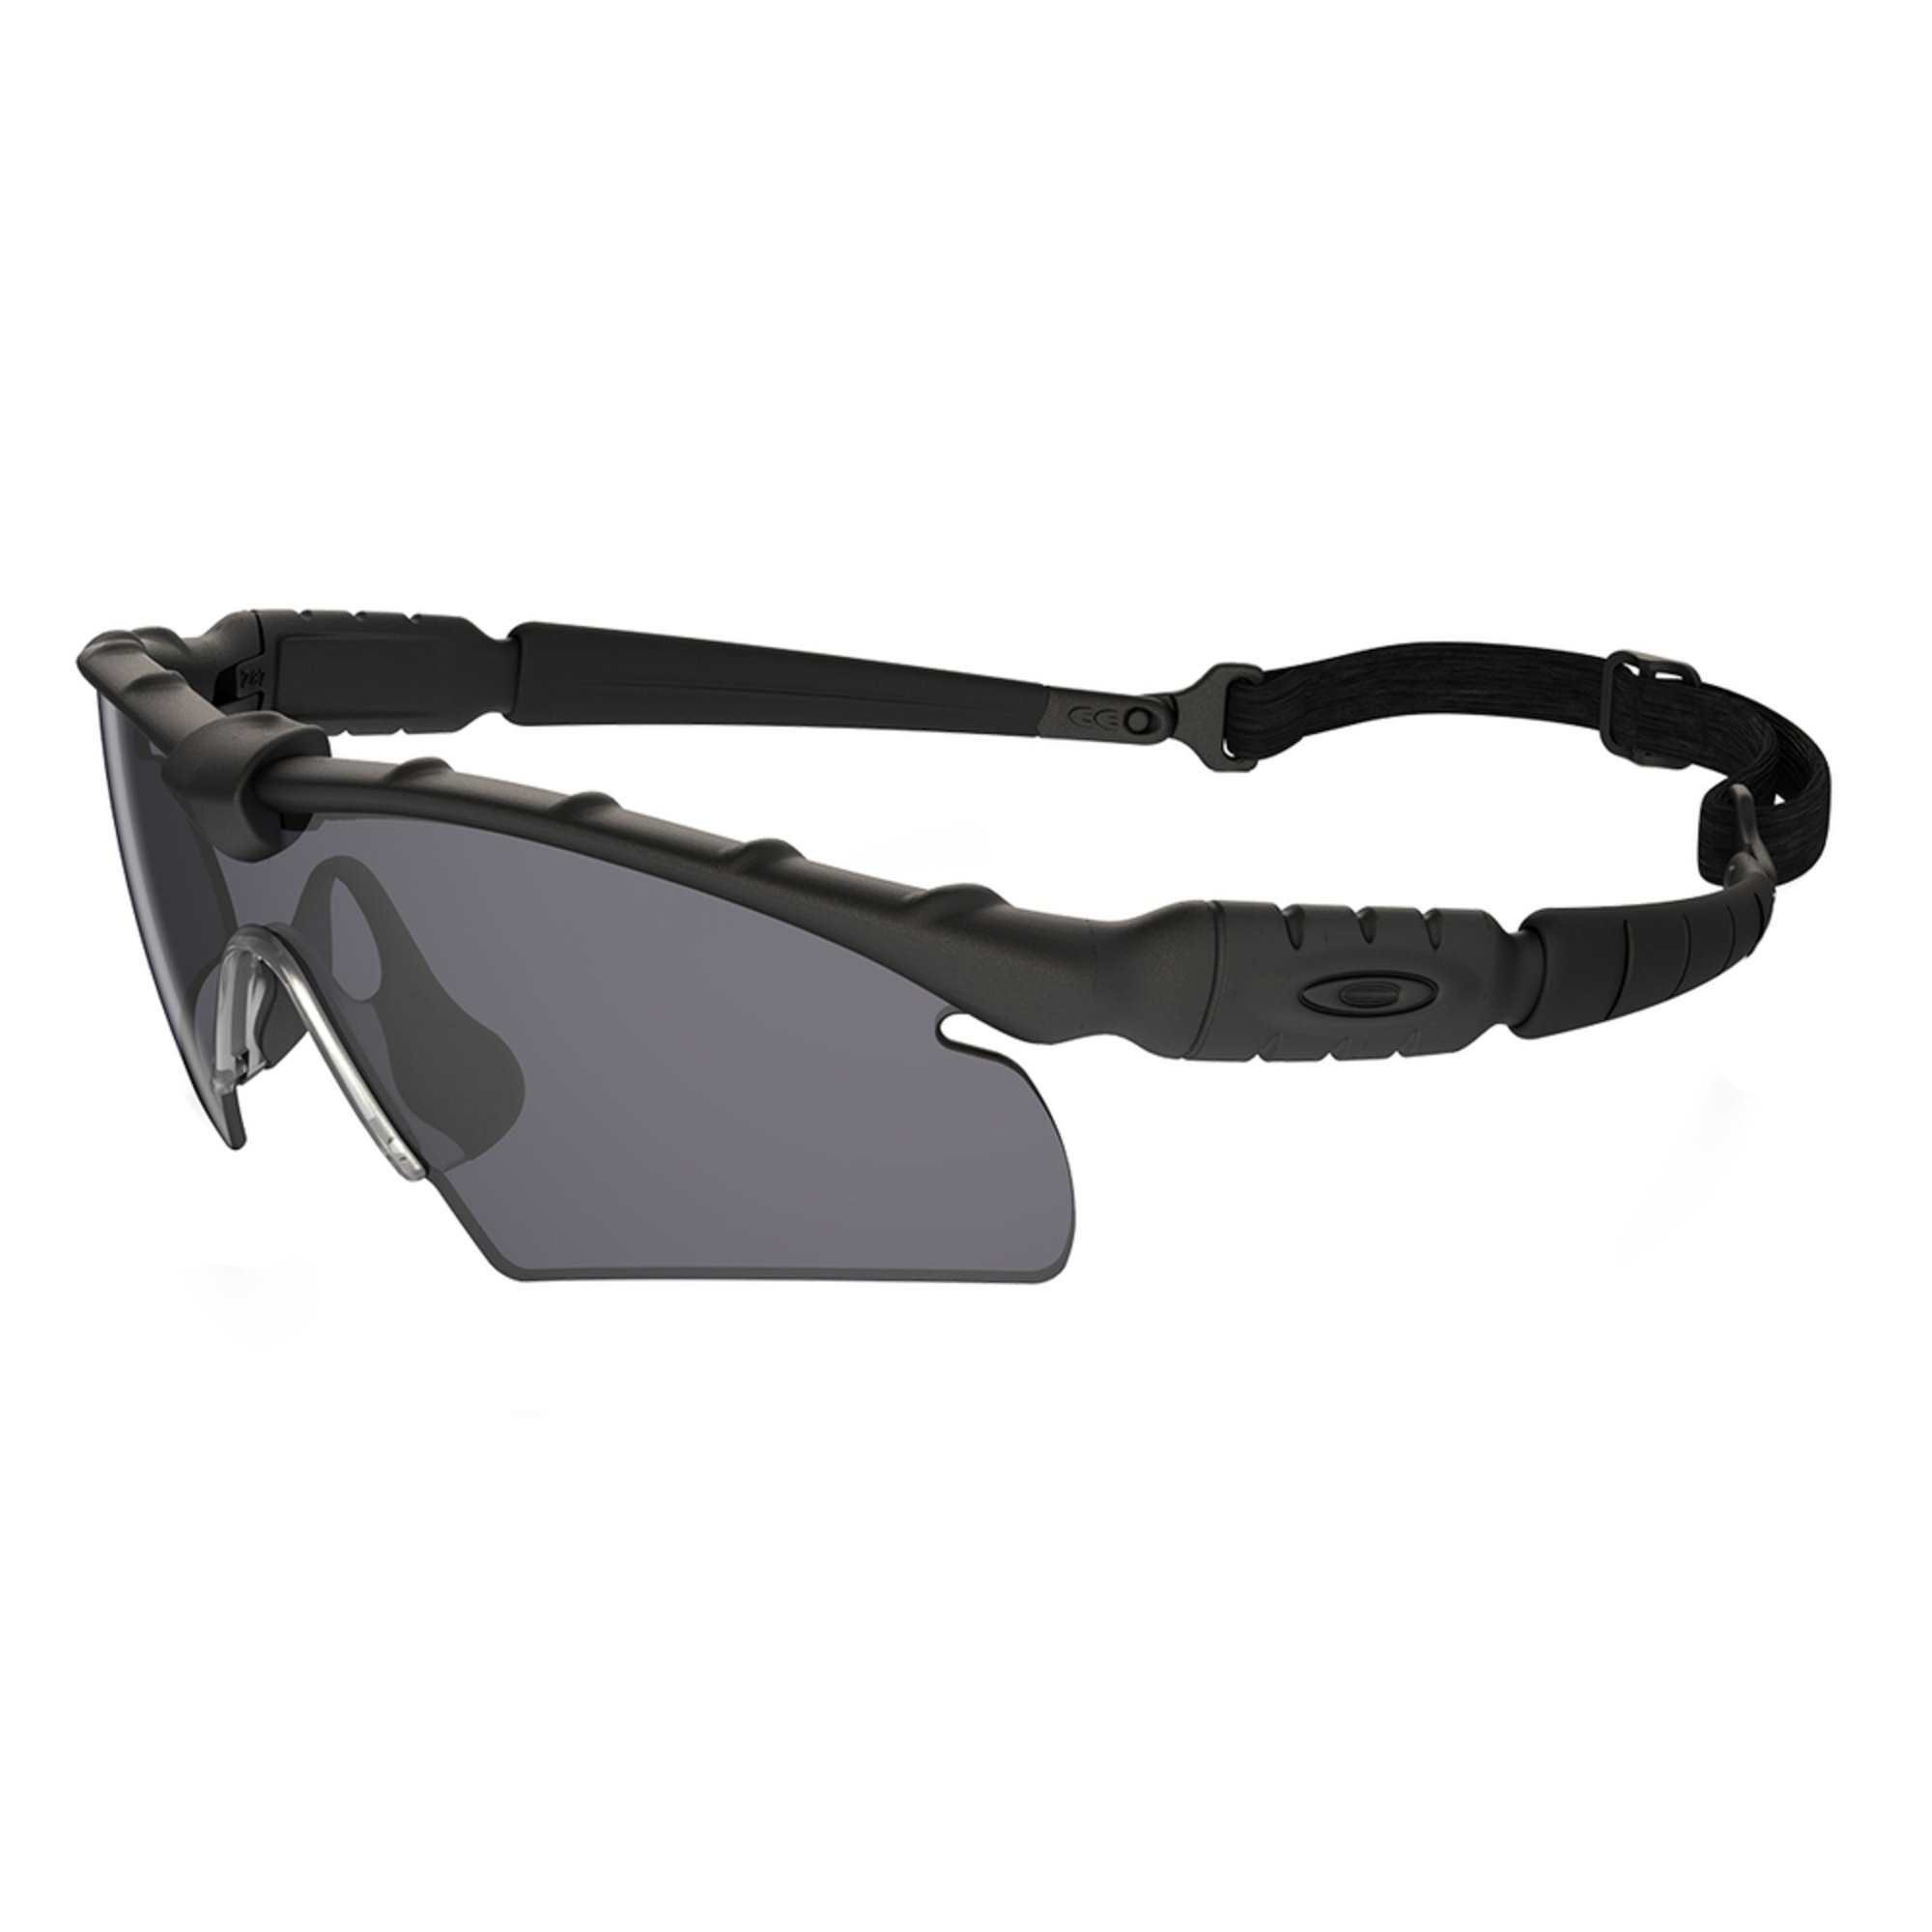 109ba87d78 Oakley. Oakley Men s Standard Issue Ballistic 2.0 Hybrid Sunglasses